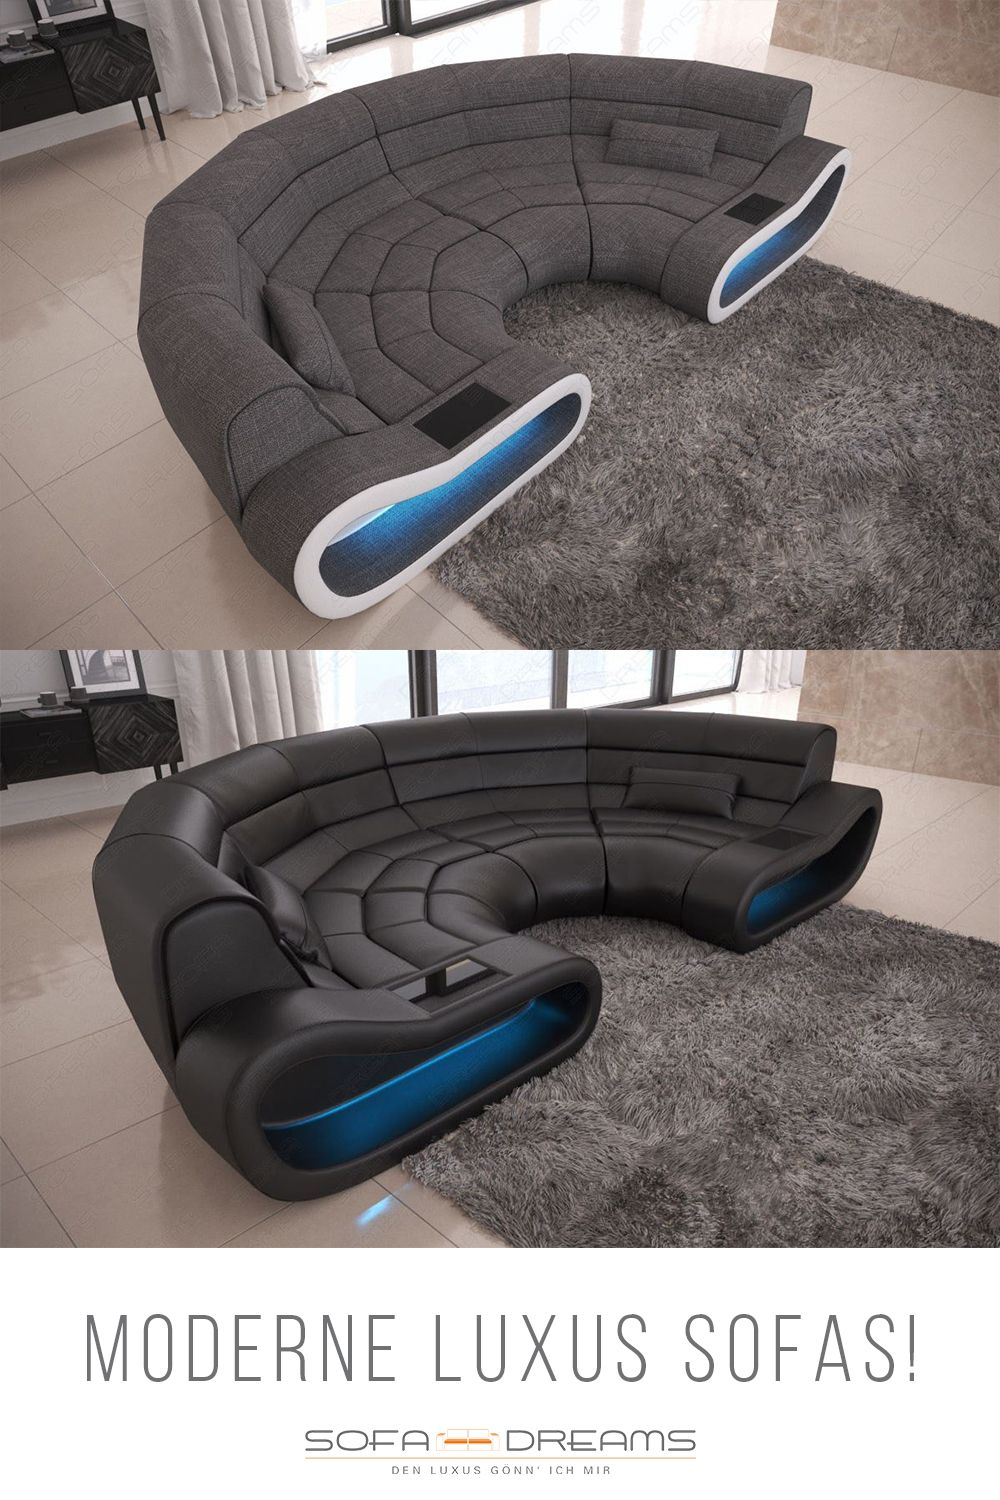 Pin On Sofa Dreams Sofa Couch Wohnlandschaft